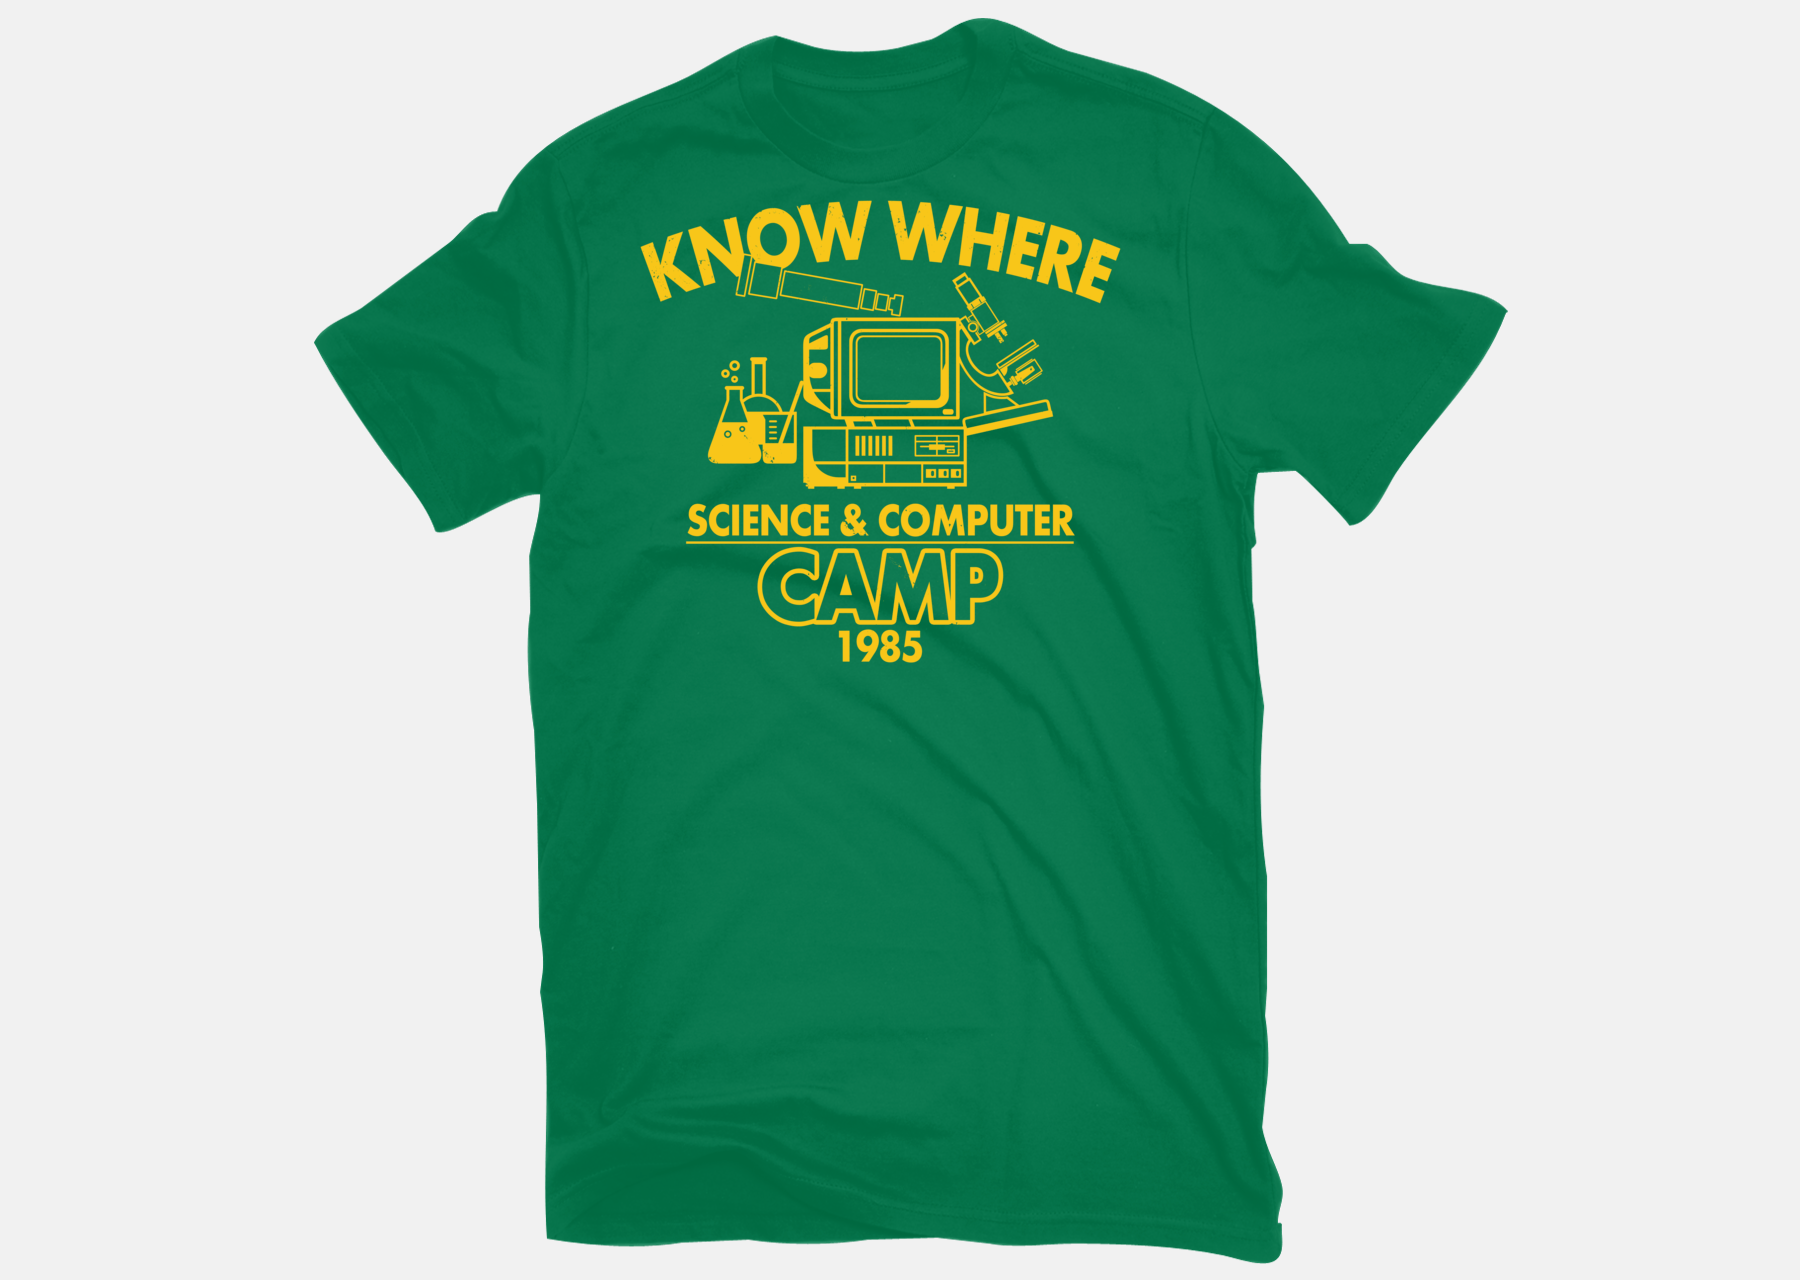 5c2484b10e02d Know Where Camp